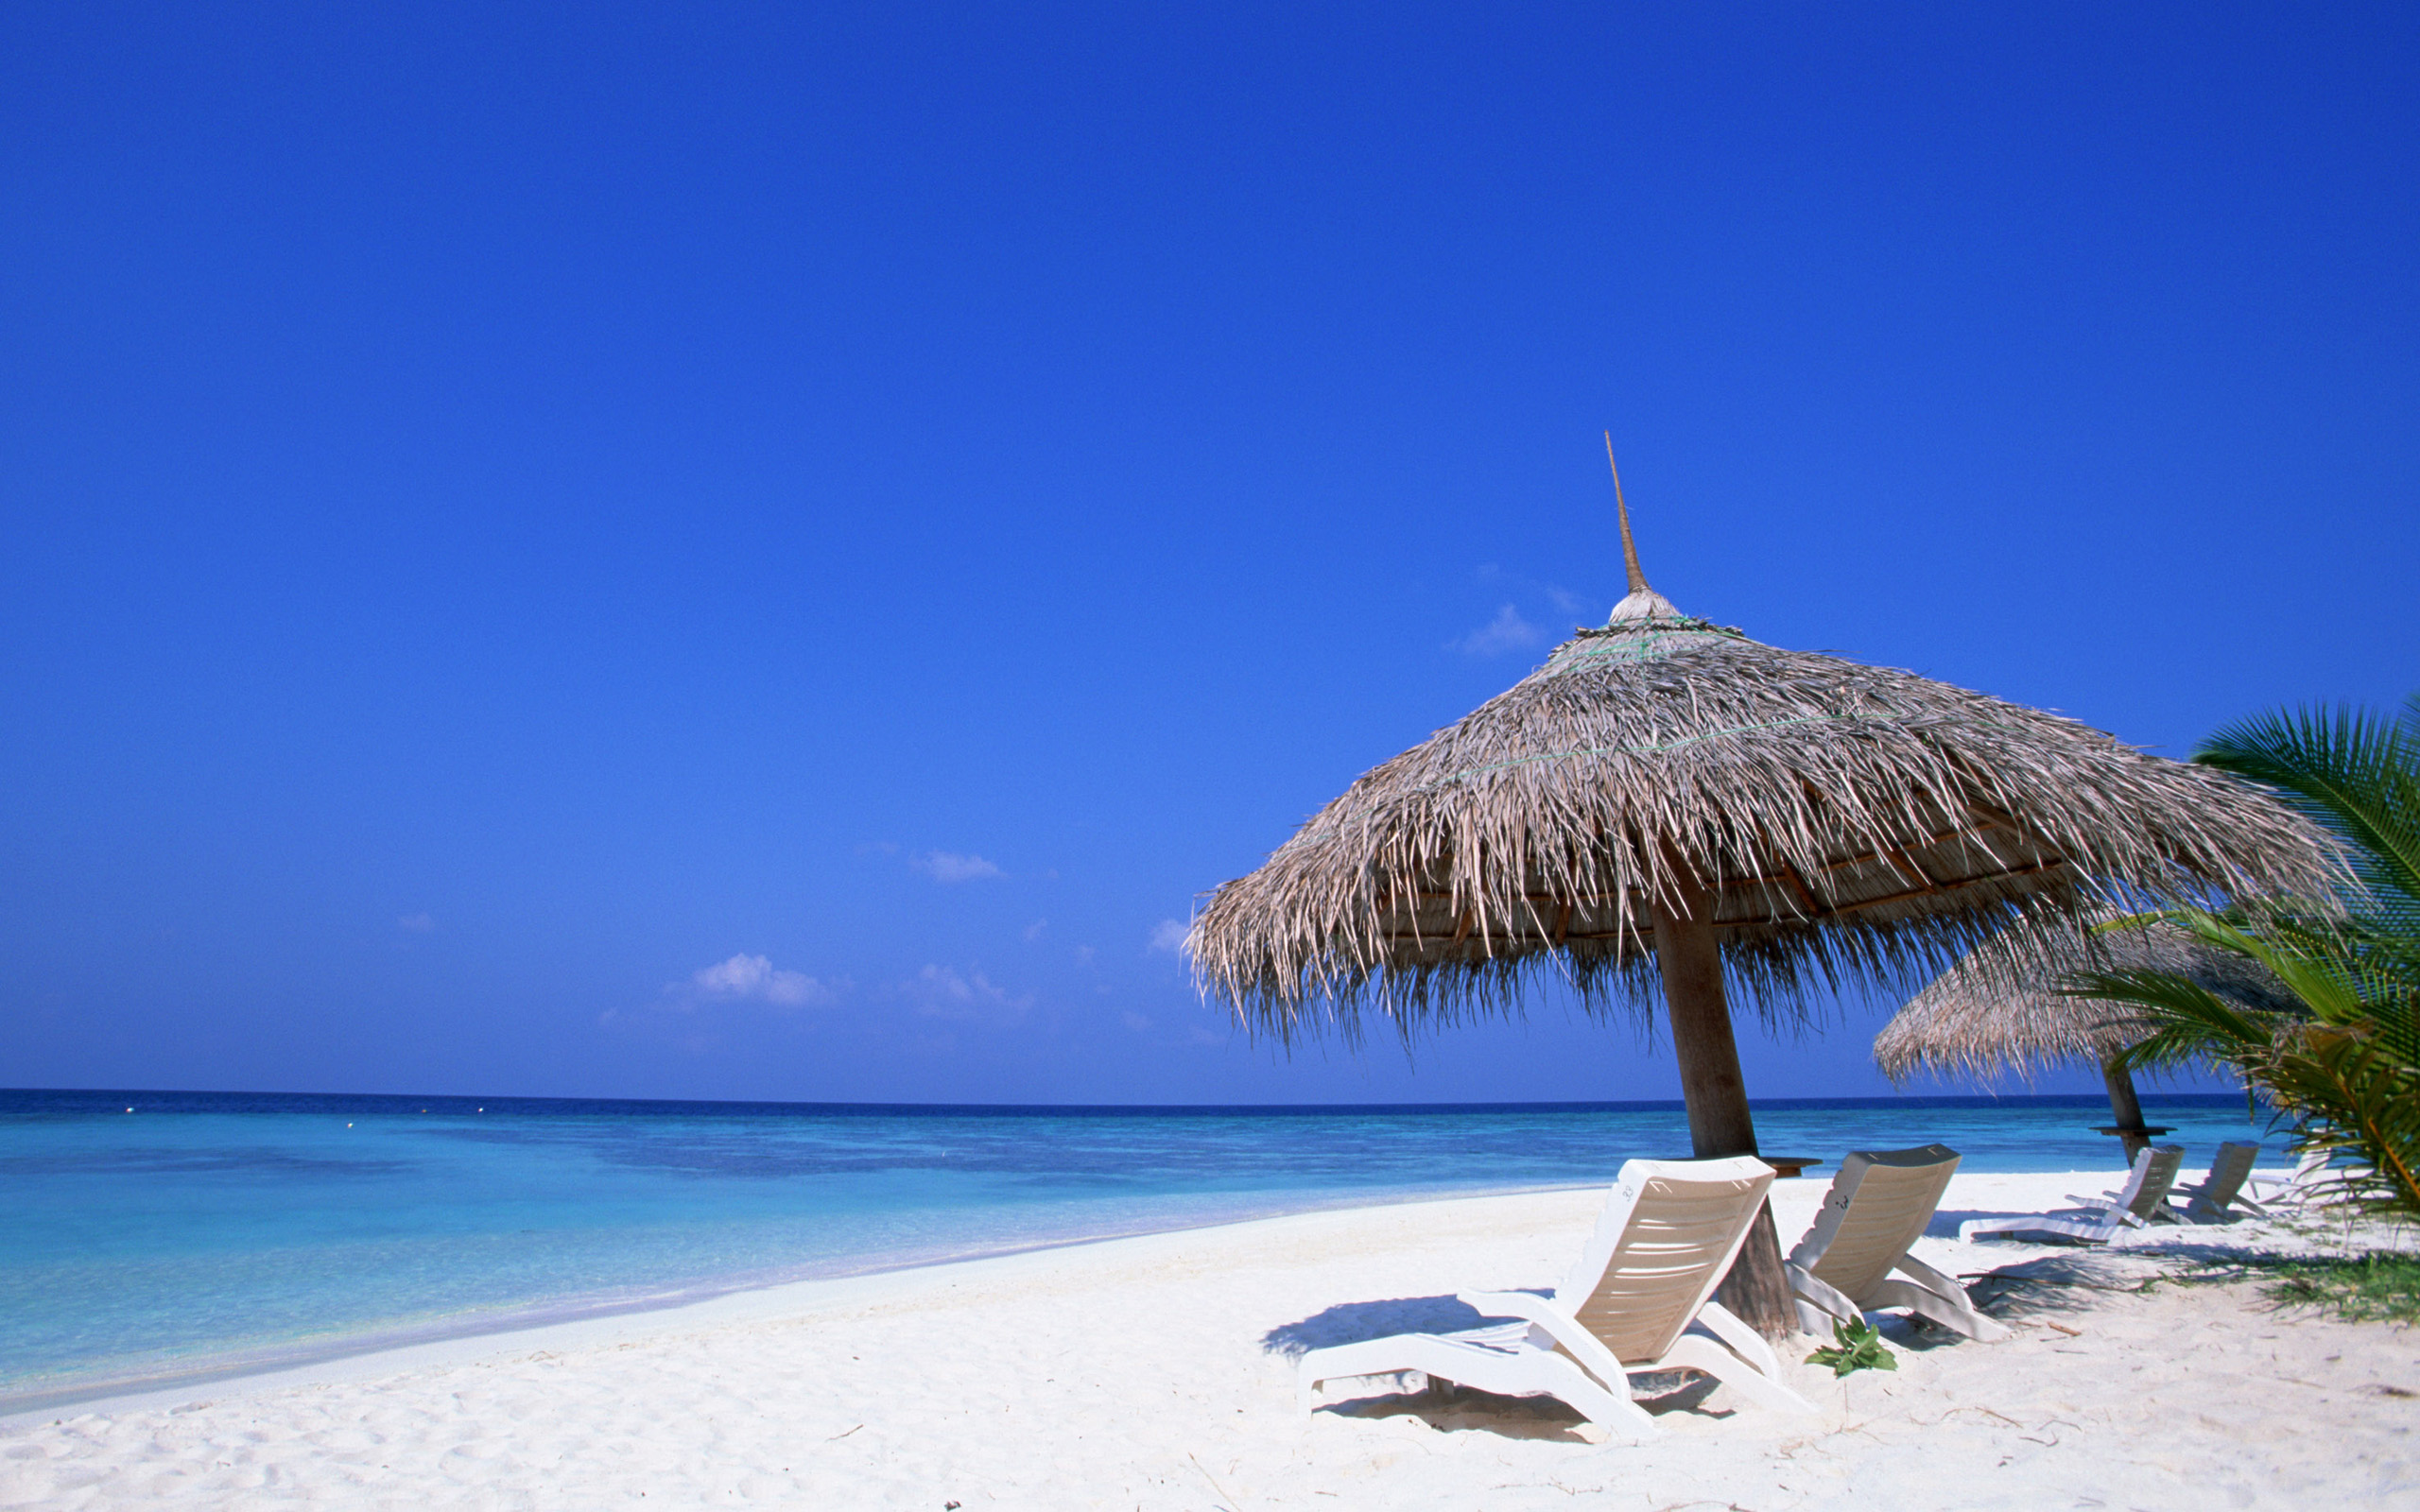 Maldives Wallpapers Maldives Beach Island Wallpaper 2560x1600